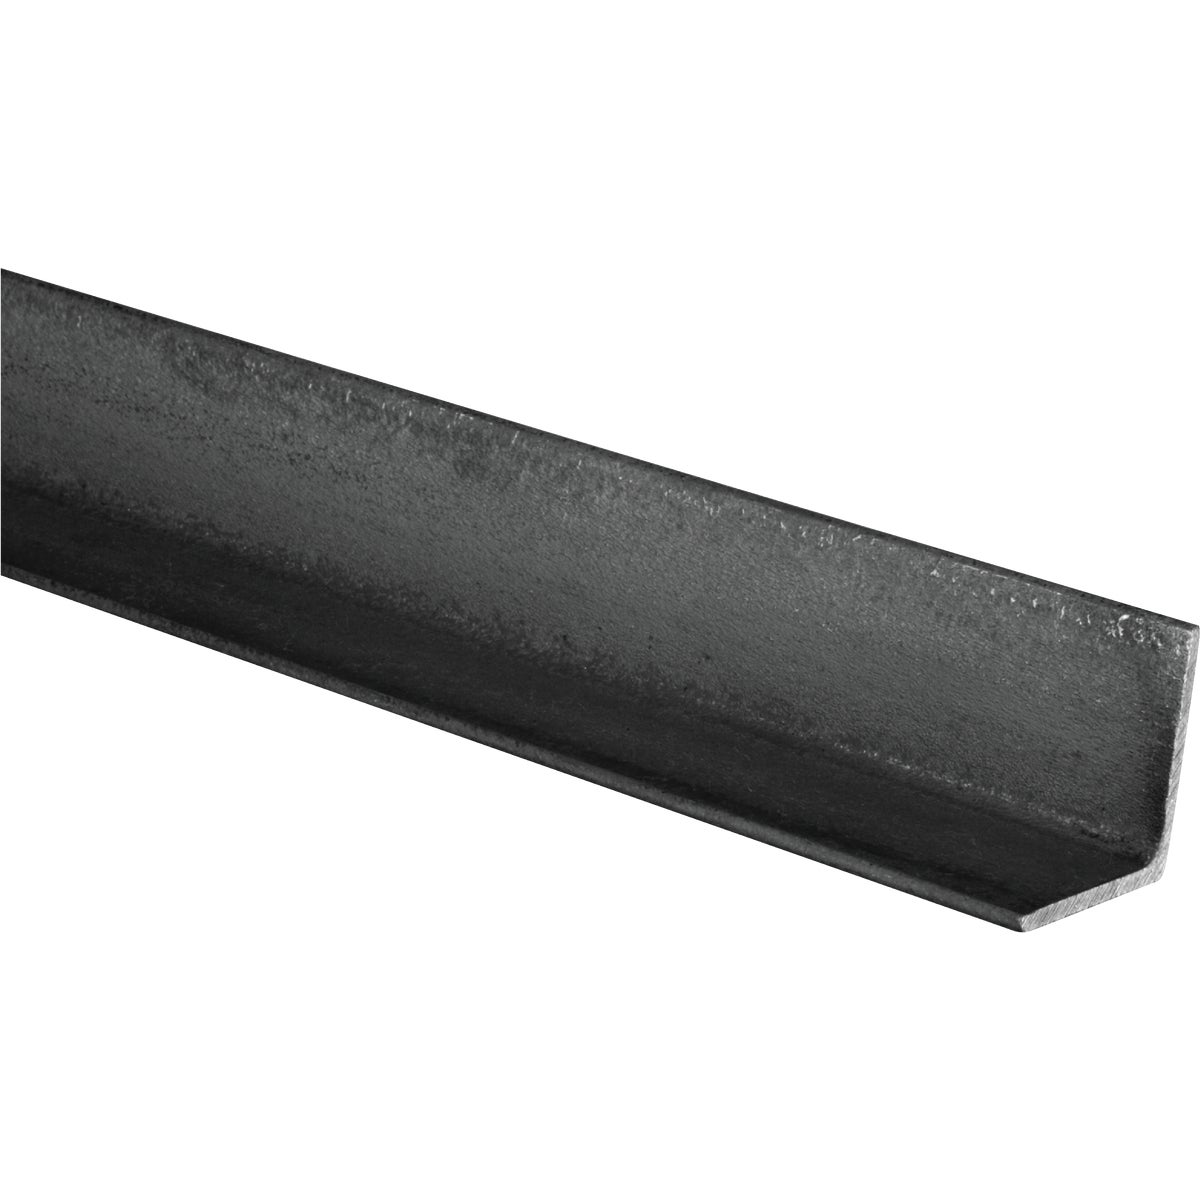 1/8X2X4' HR STEEL ANGLE - N215483 by National Mfg Co